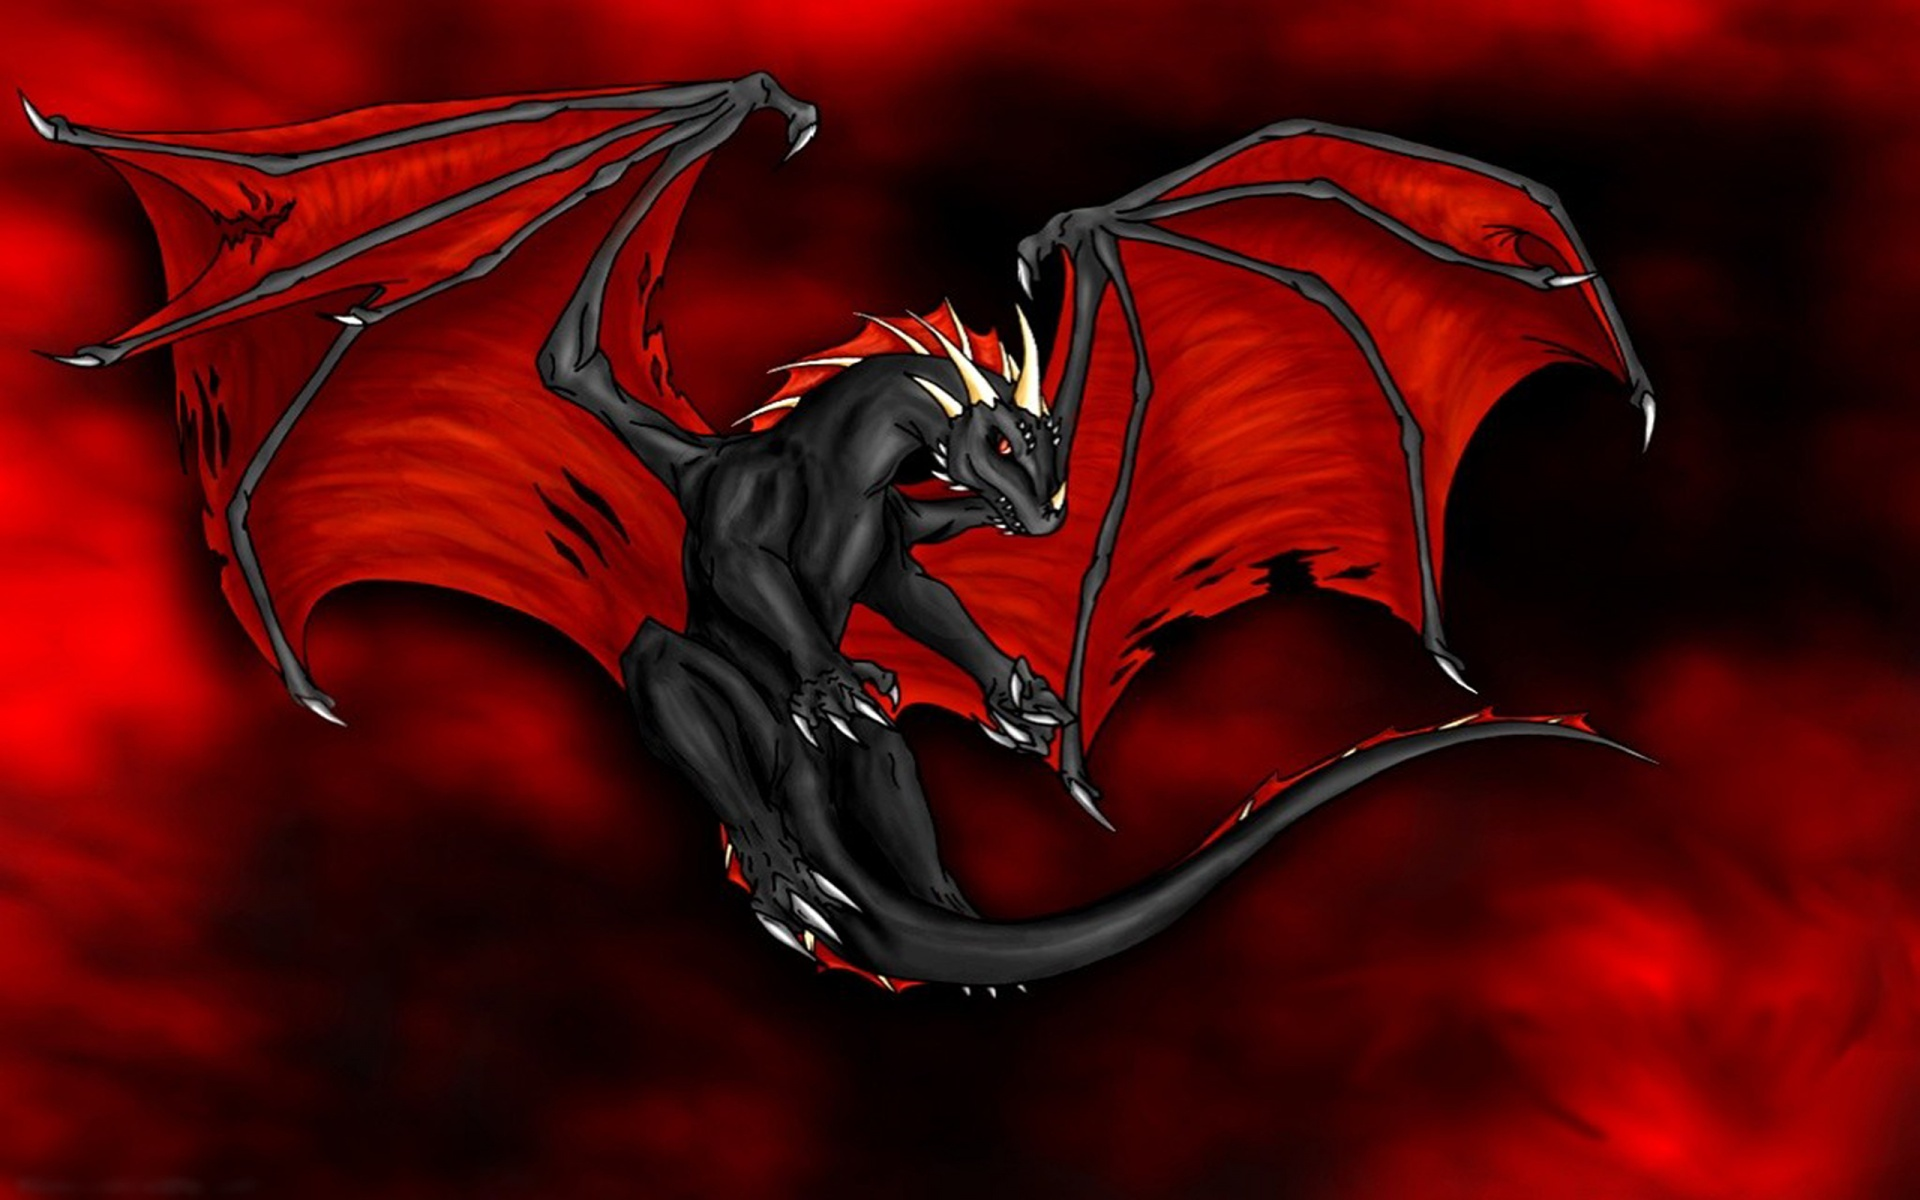 Red Dragons wallpapers Red Dragons background 1920x1200